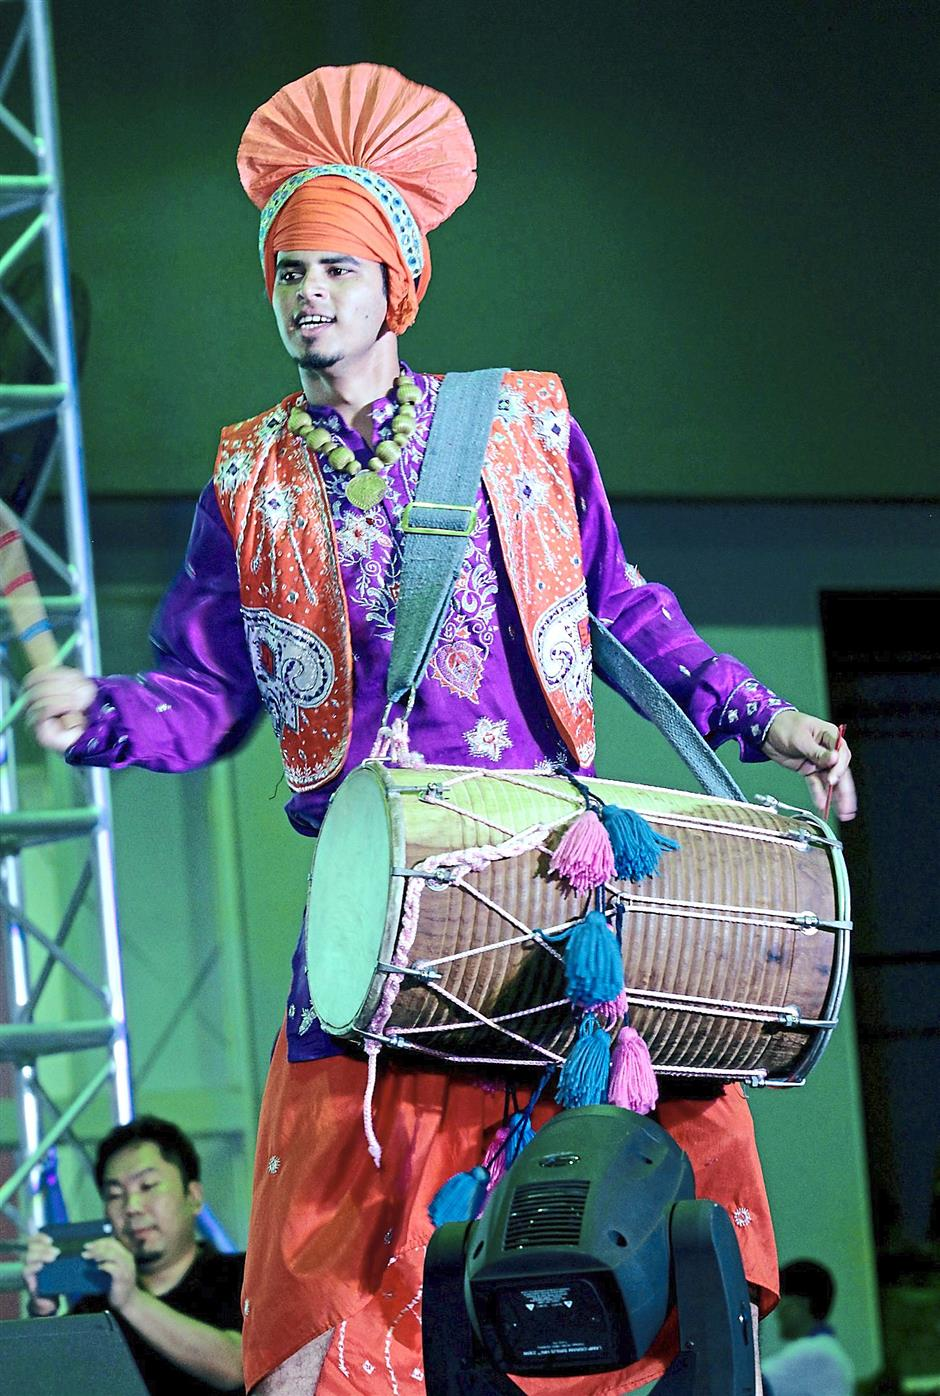 Infectious beats: A drummer representing Malaysia in the Bhangra dance troupe giving an energetic performance.